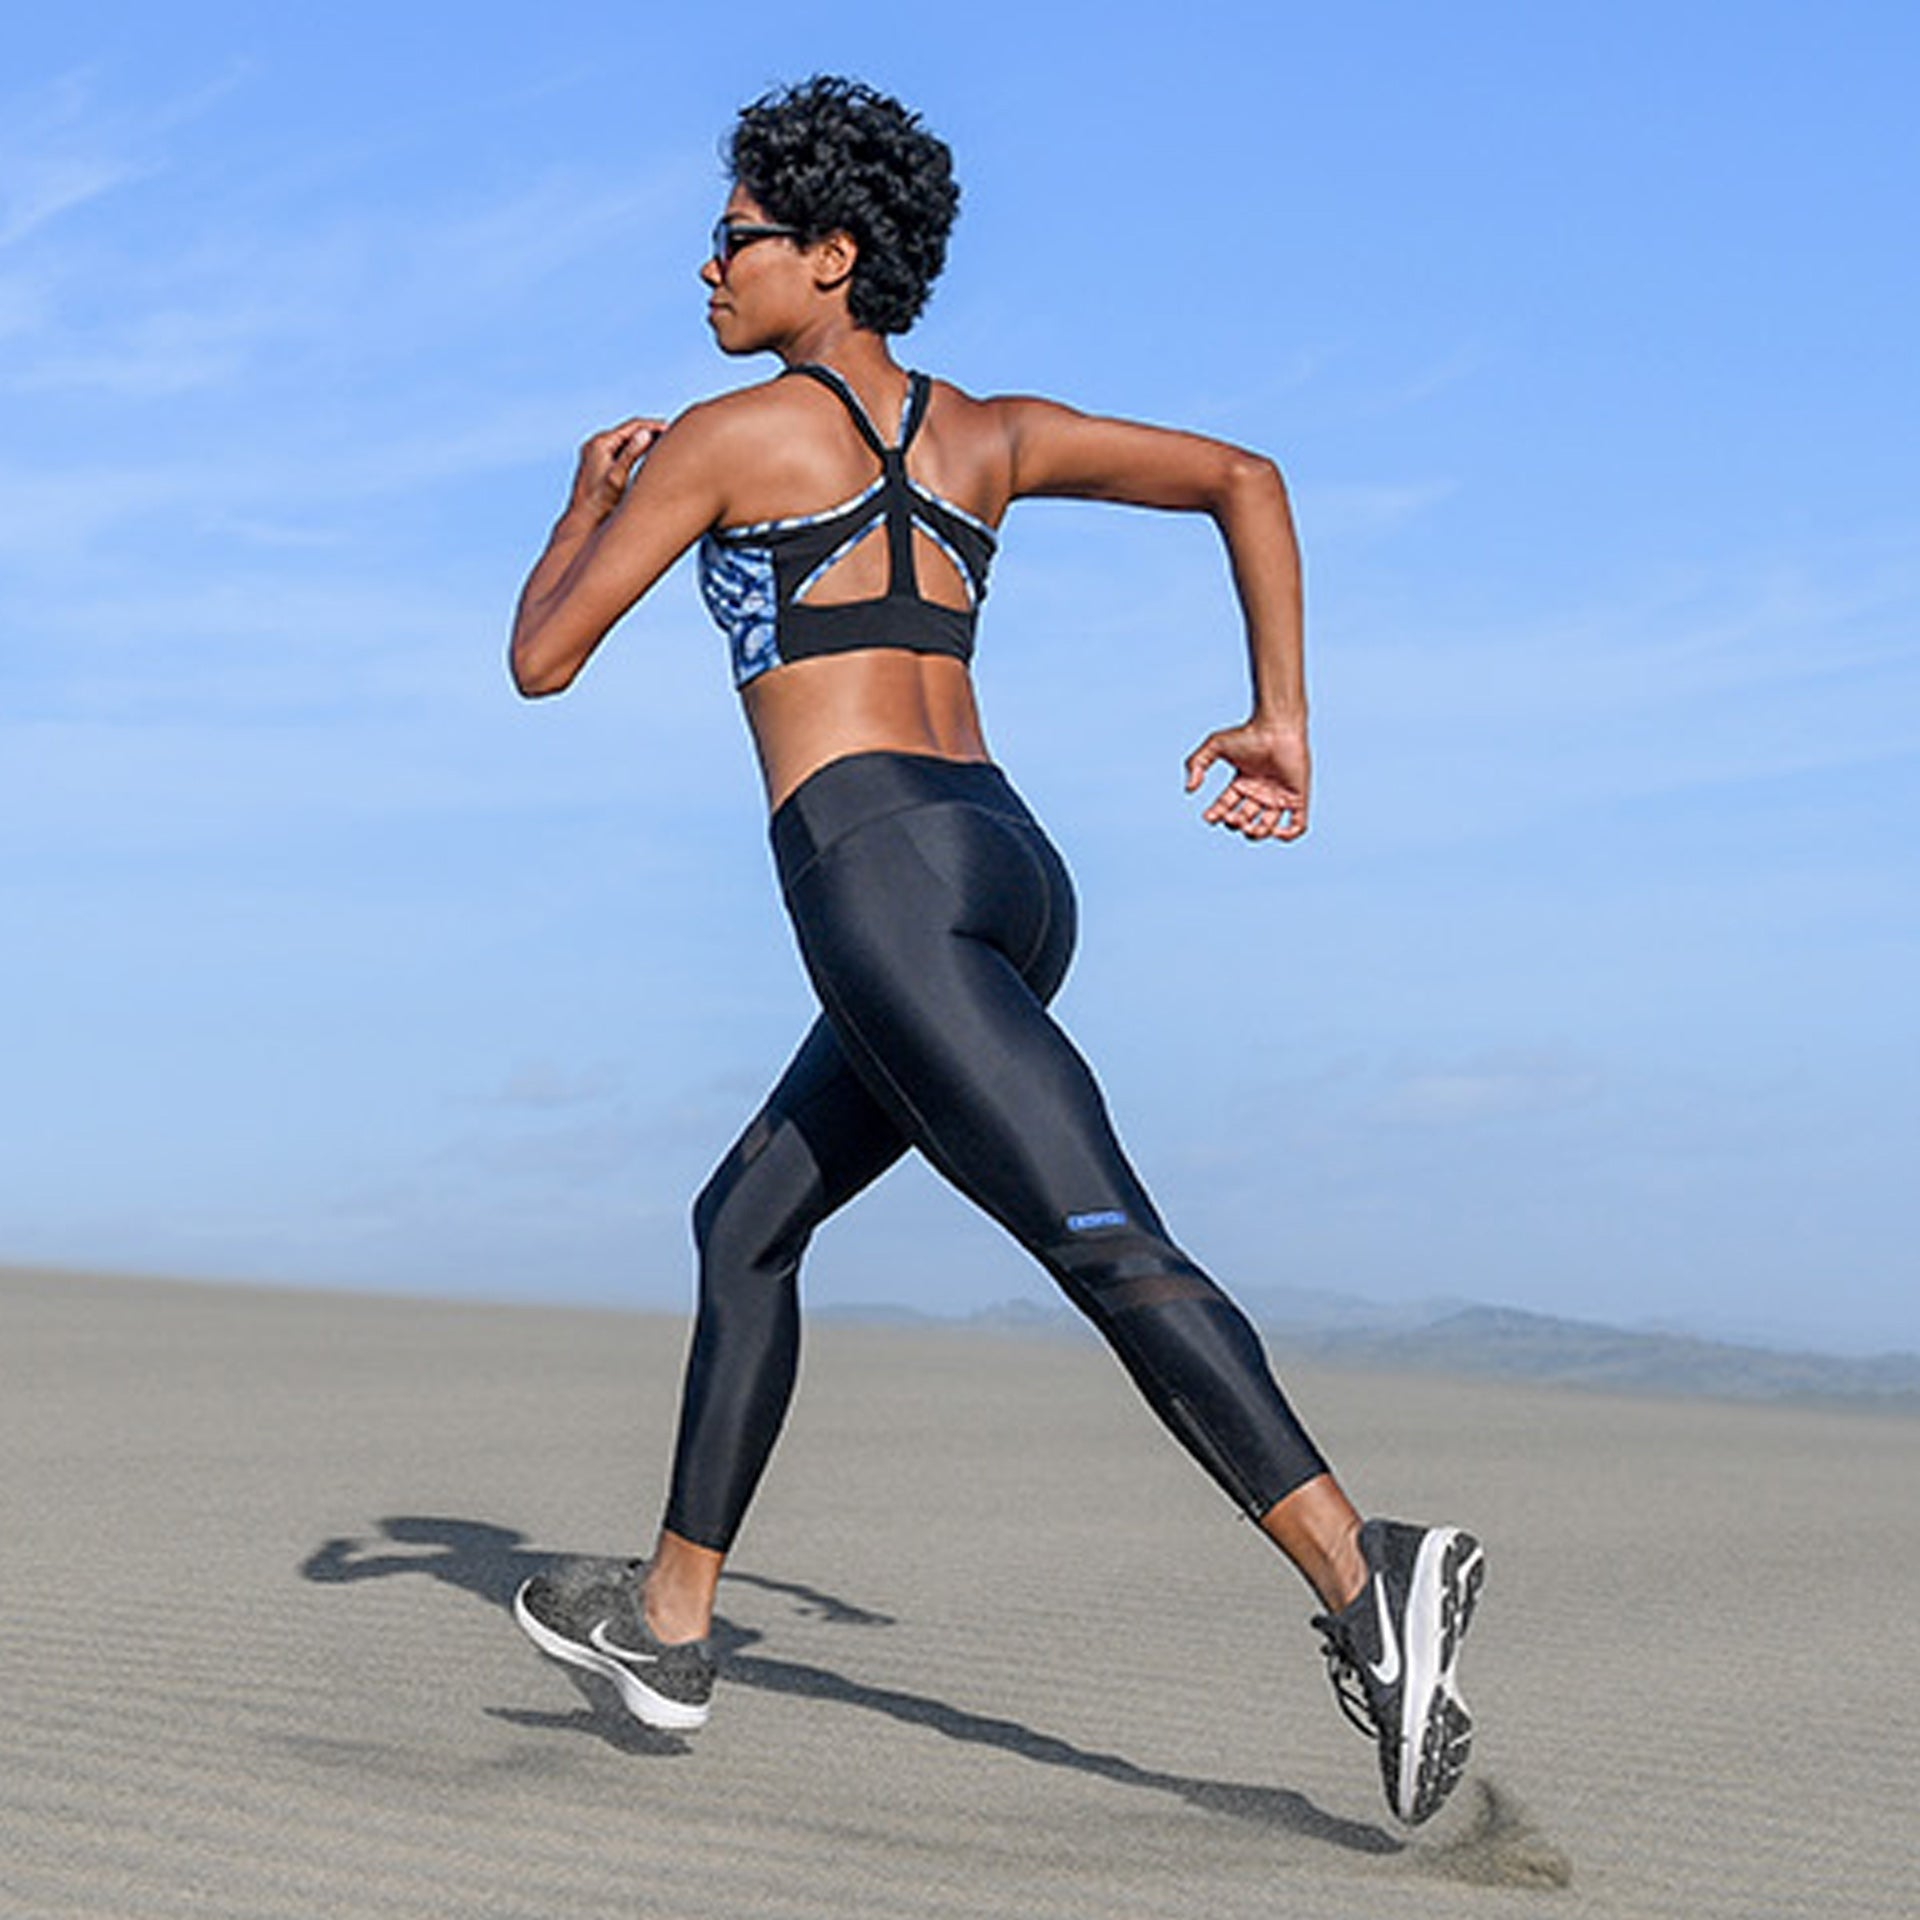 RUSHCUTTER 7/8 TIGHT // BLACK & BLACK - Nayali - Activewear for A-G Cup